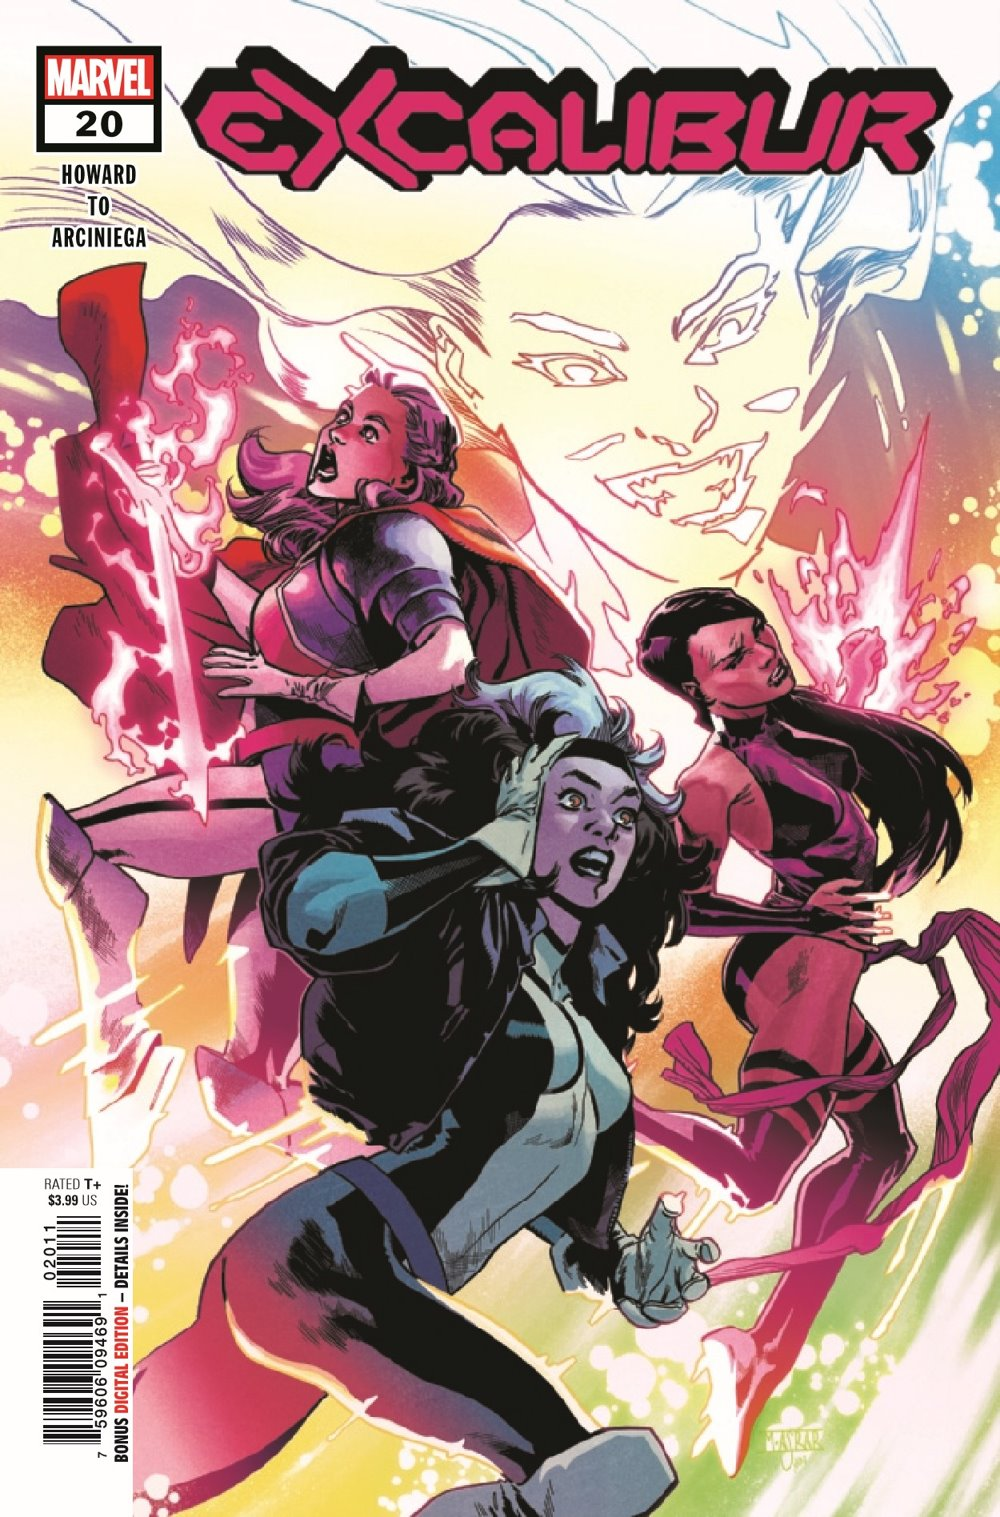 EXCAL2019020_Preview-1 ComicList Previews: EXCALIBUR #20